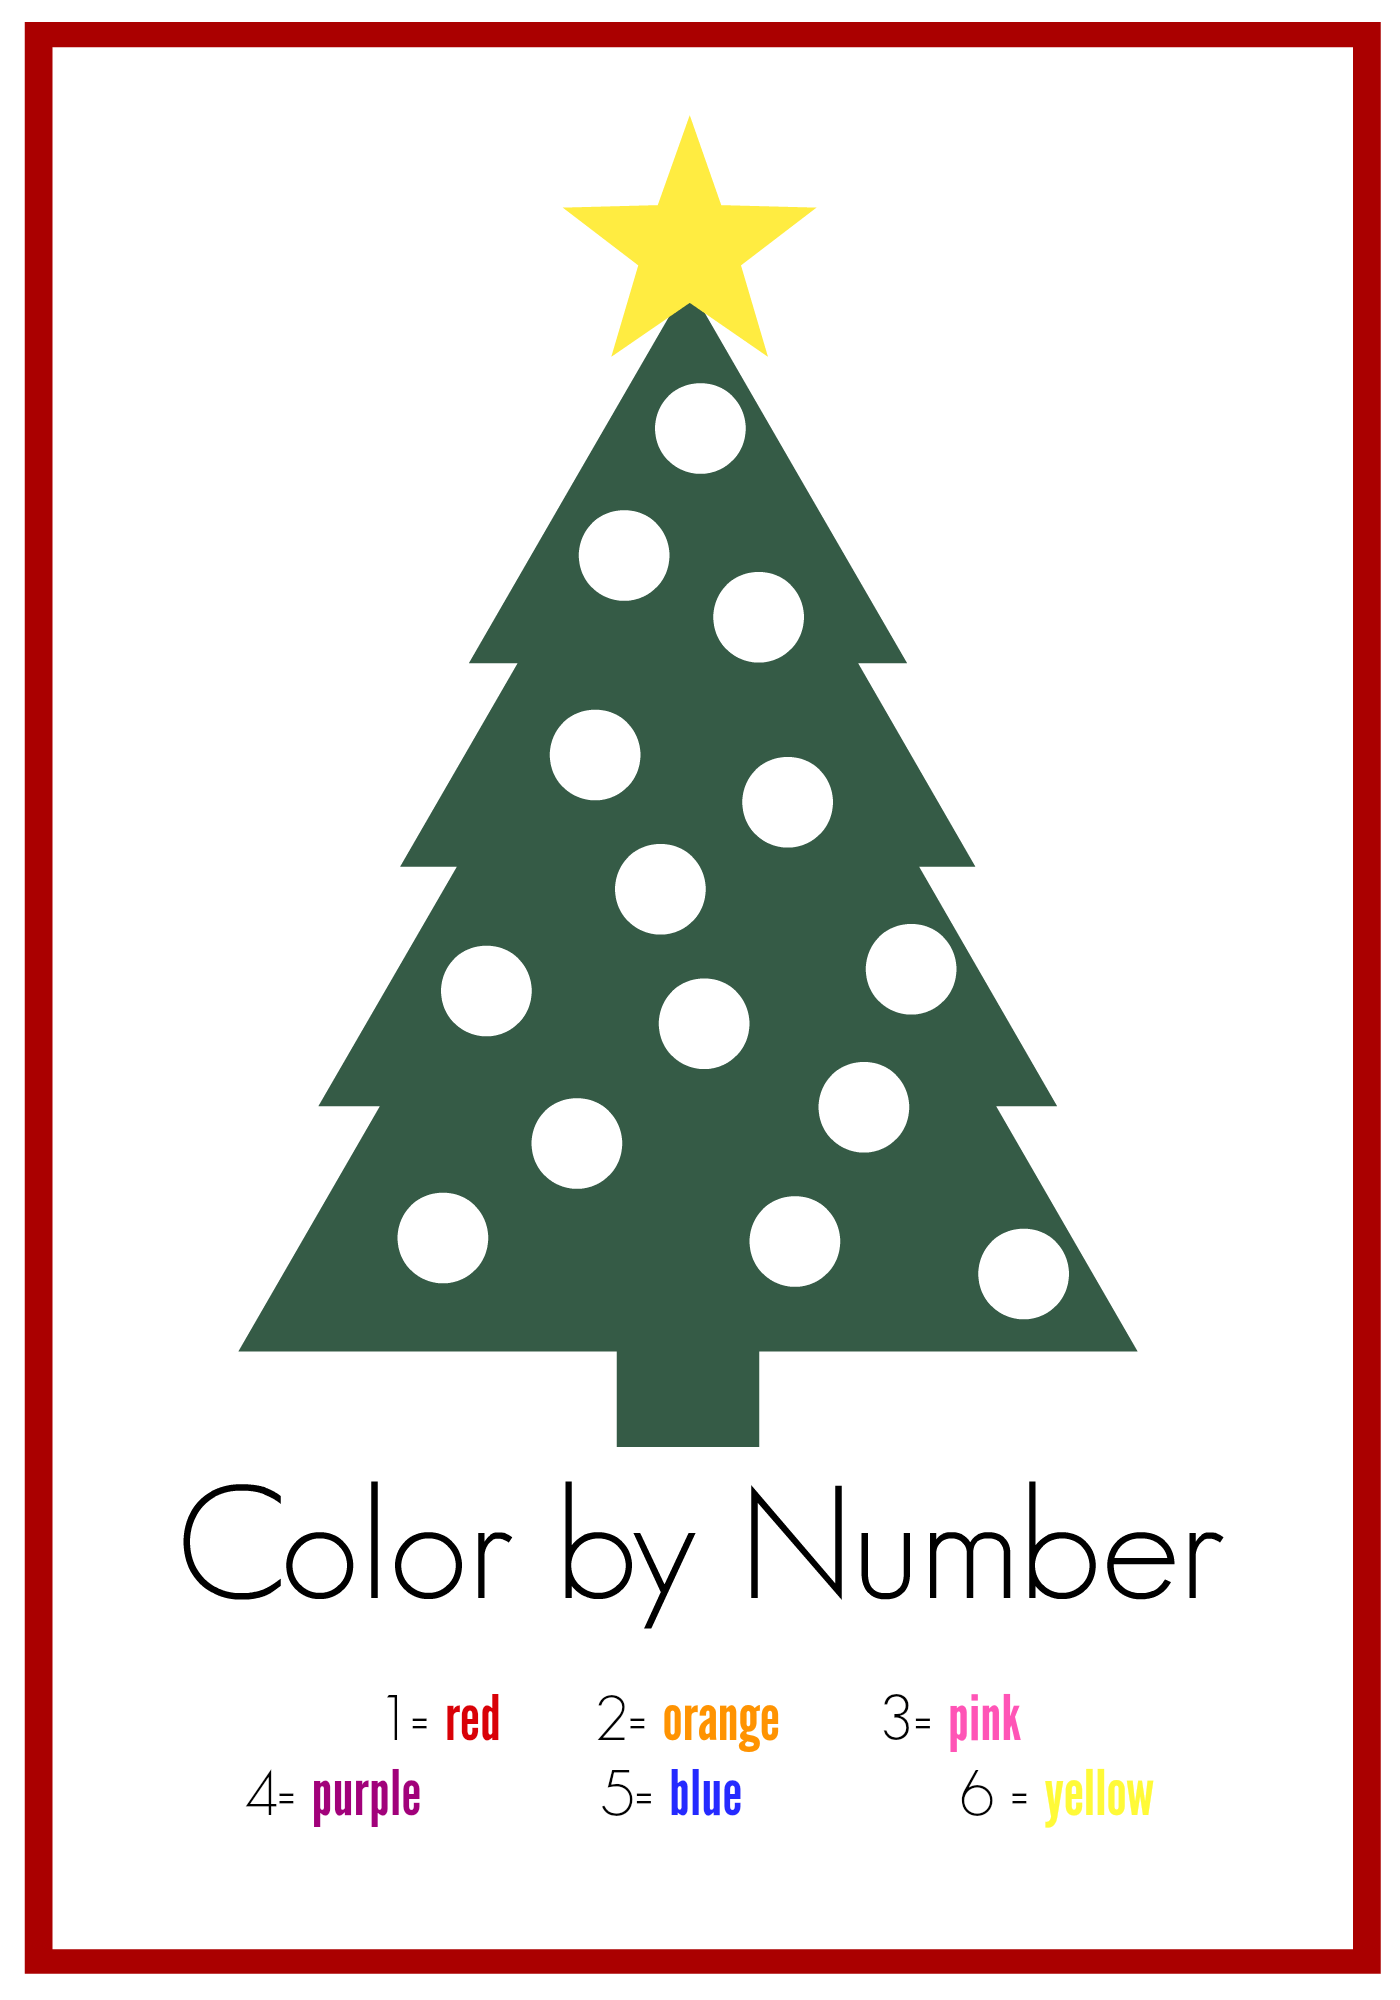 7 Ways To Use This Free Color By Number Printables